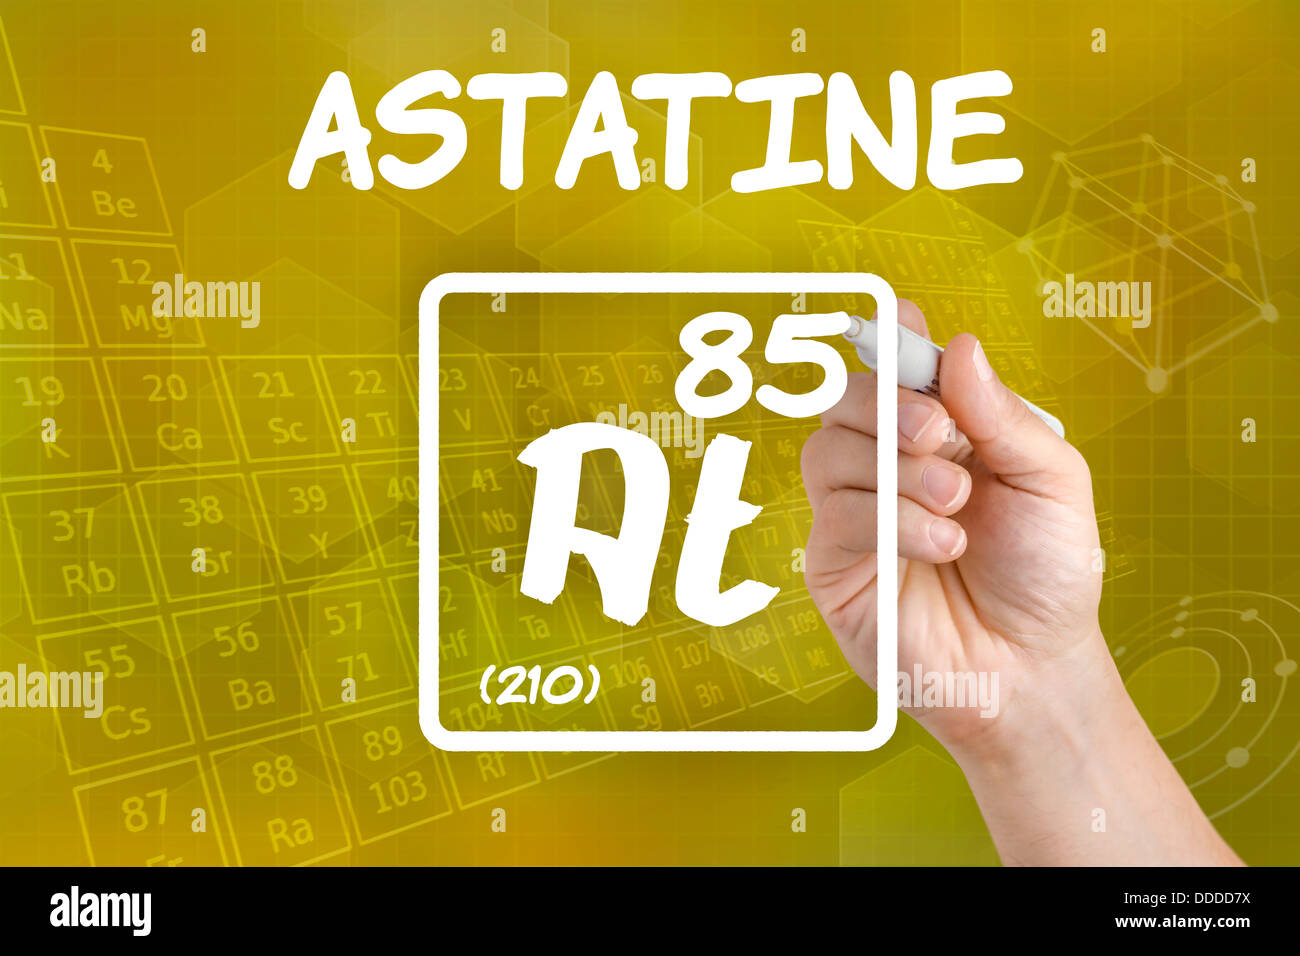 Symbol for the chemical element astatine stock photo royalty free stock photo symbol for the chemical element astatine gamestrikefo Image collections